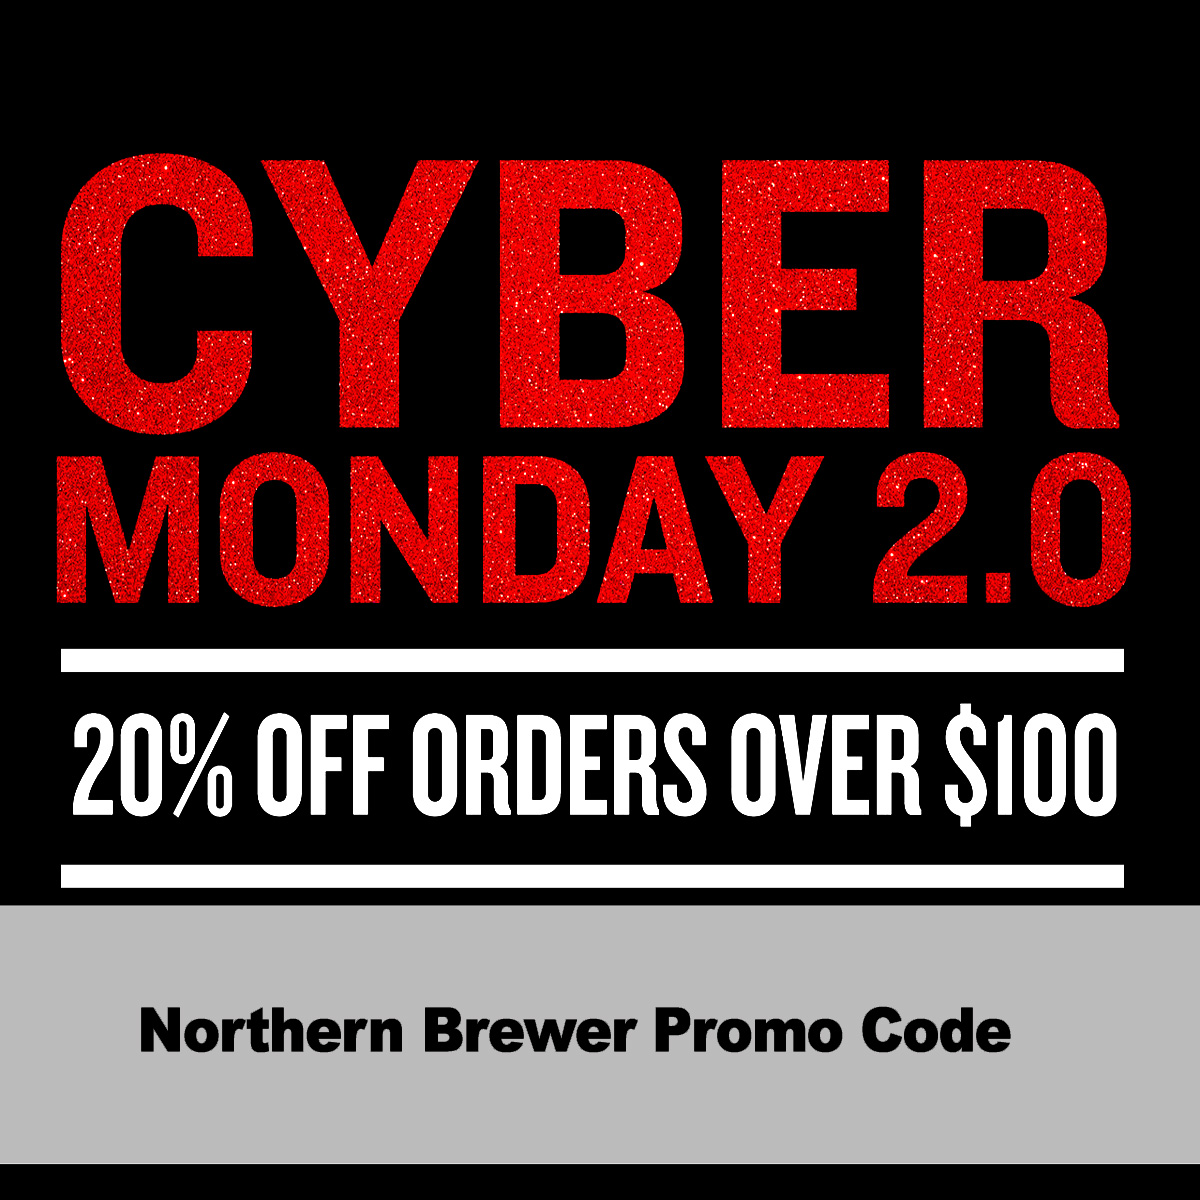 Home Wine Making Coupon Codes for Save 20% off any order over $100 NorthernBrewer.com Promo Code Coupon Code